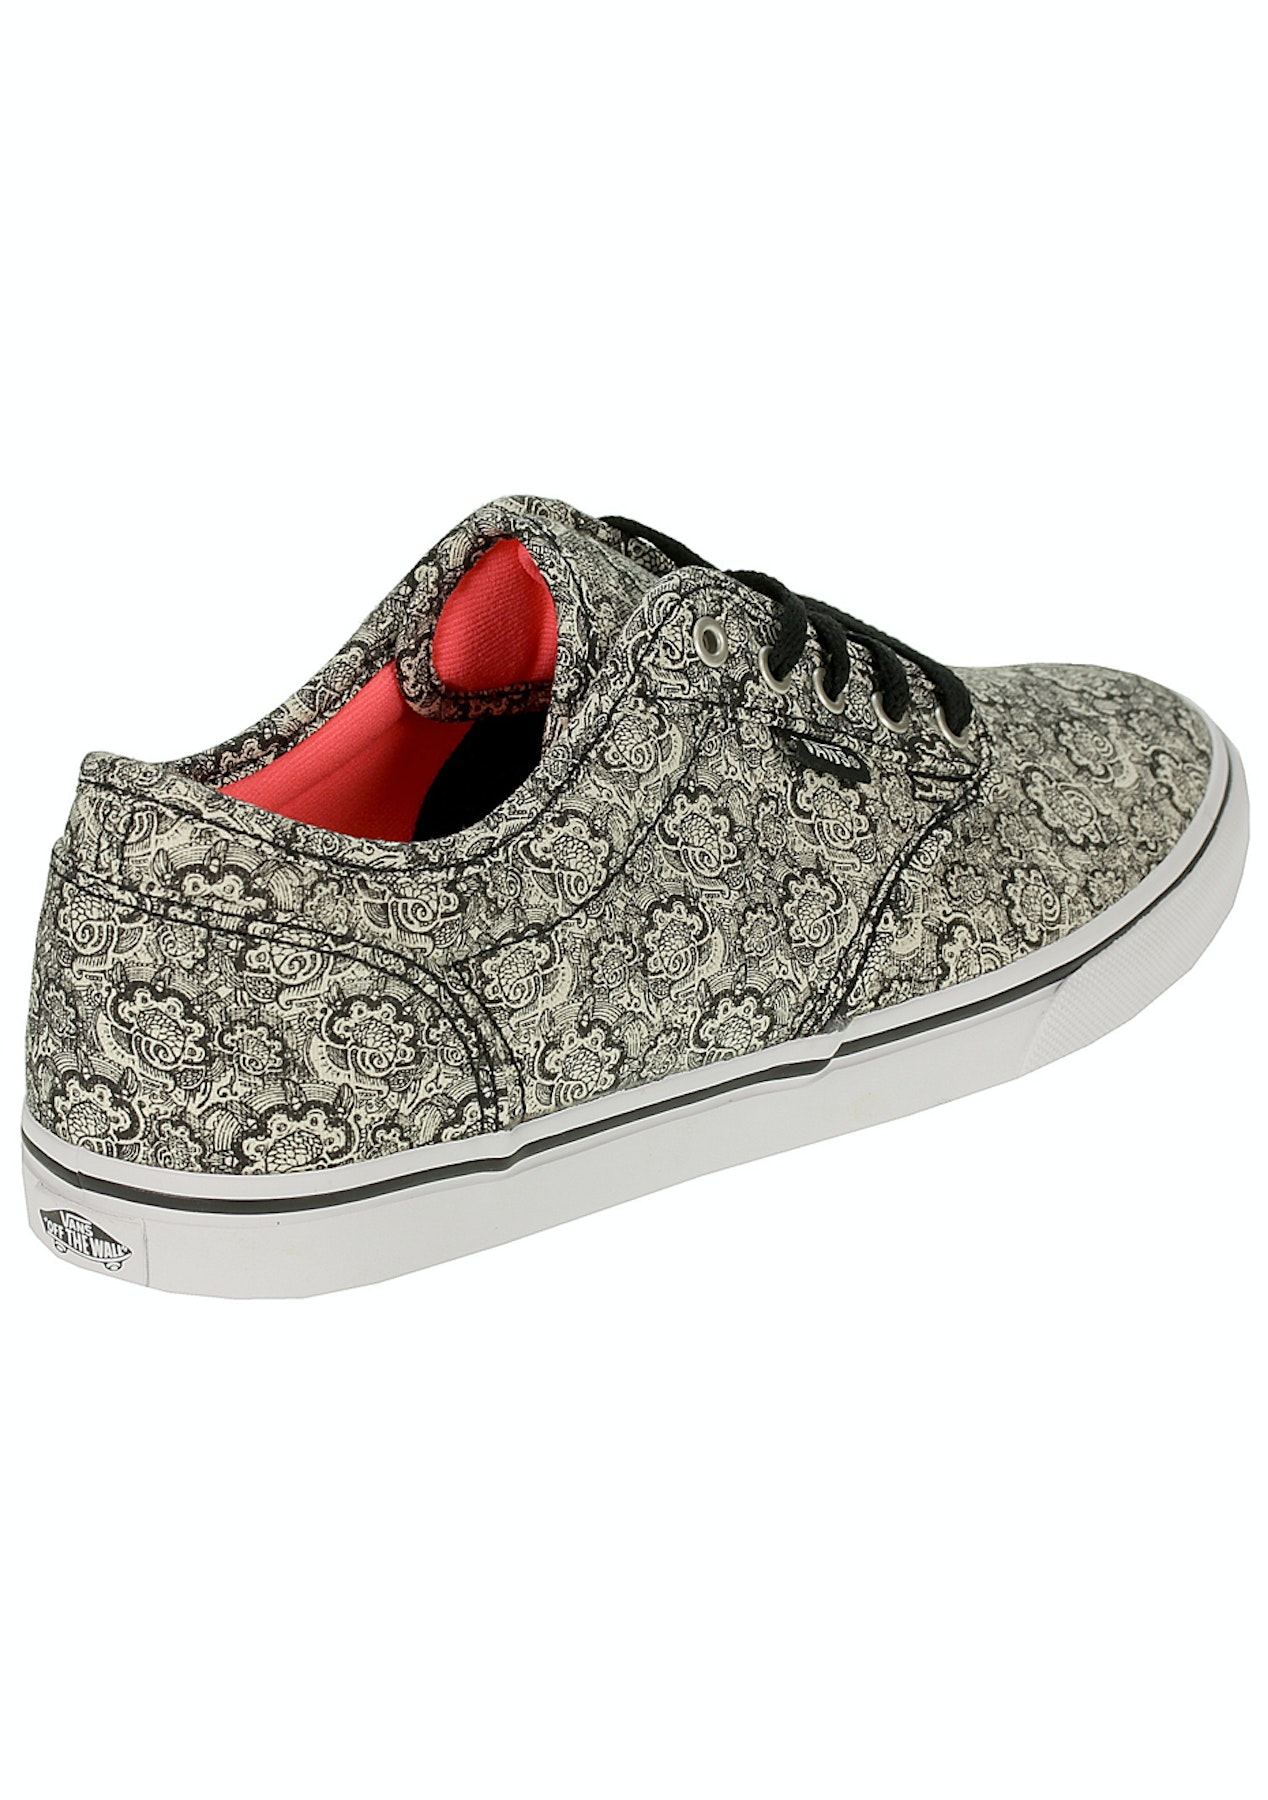 Vans - Womens Atwood Low - Henna - Black White - Vans for The Family -  Onceit 9e7f3239d9